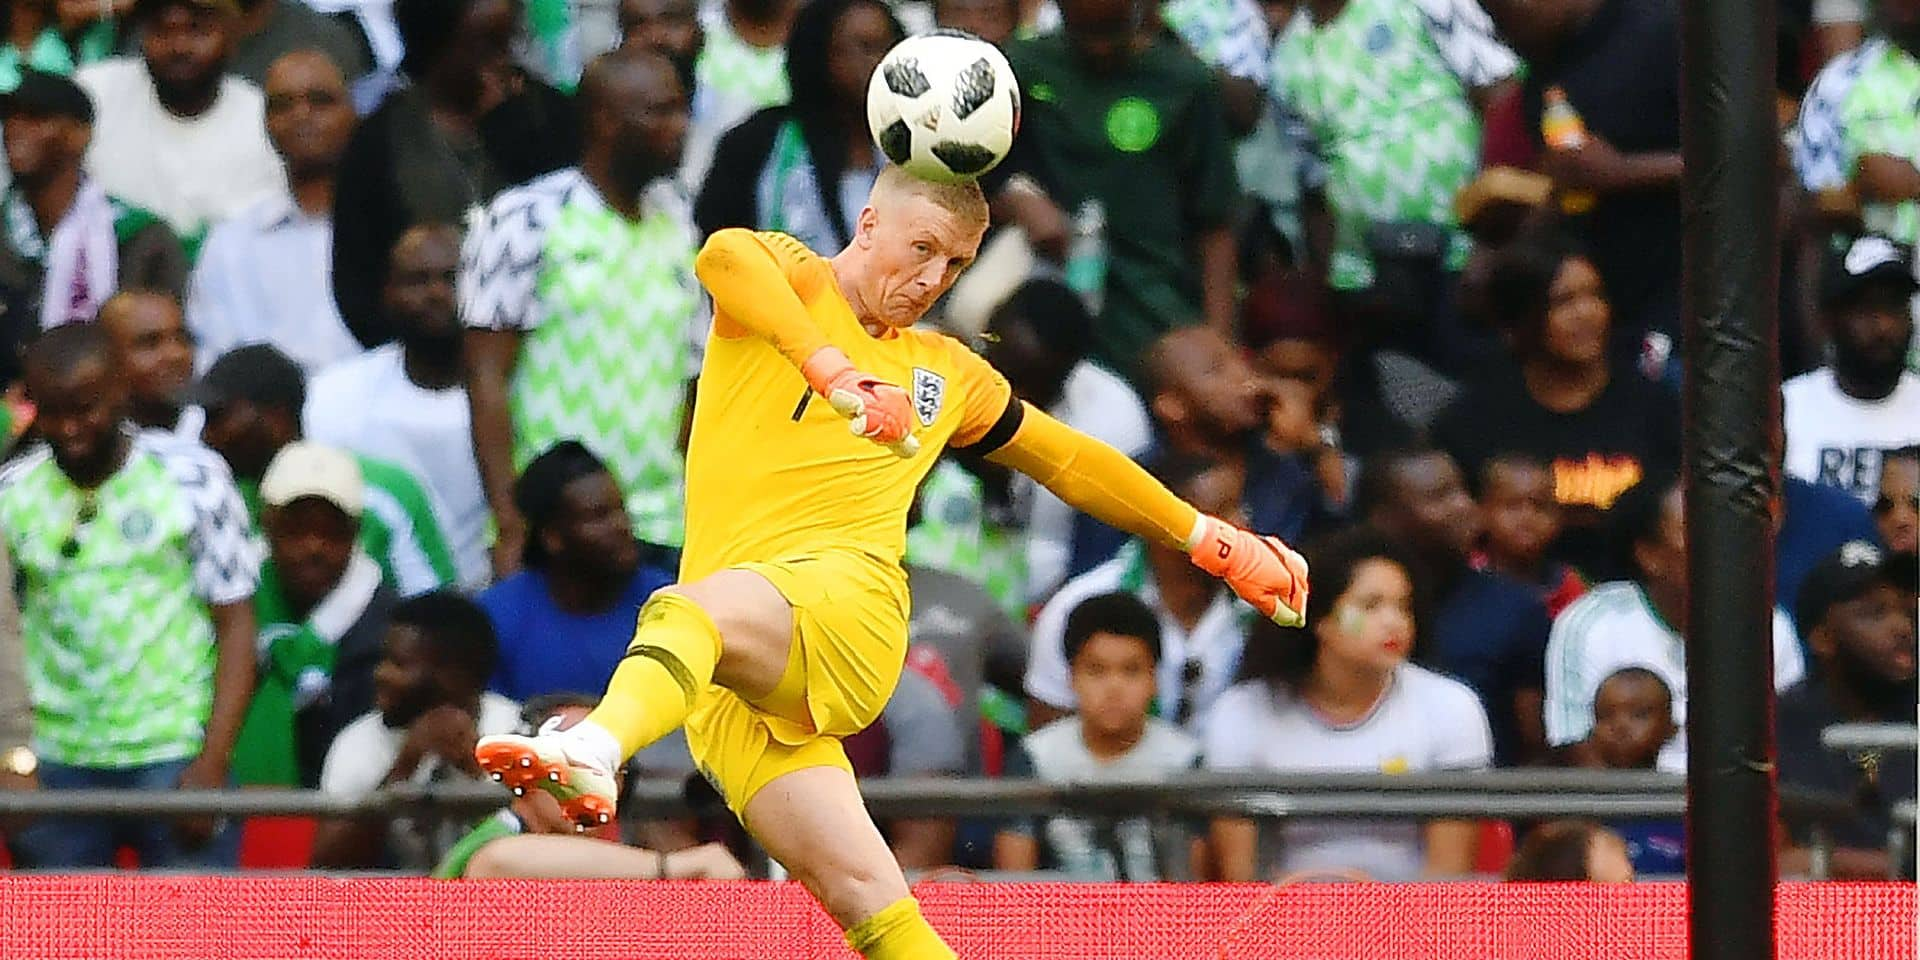 England's goalkeeper Jordan Pickford kicks the ball out during the International friendly football match between England and Nigeria at Wembley stadium in London on June 2, 2018. / AFP PHOTO / Ben STANSALL